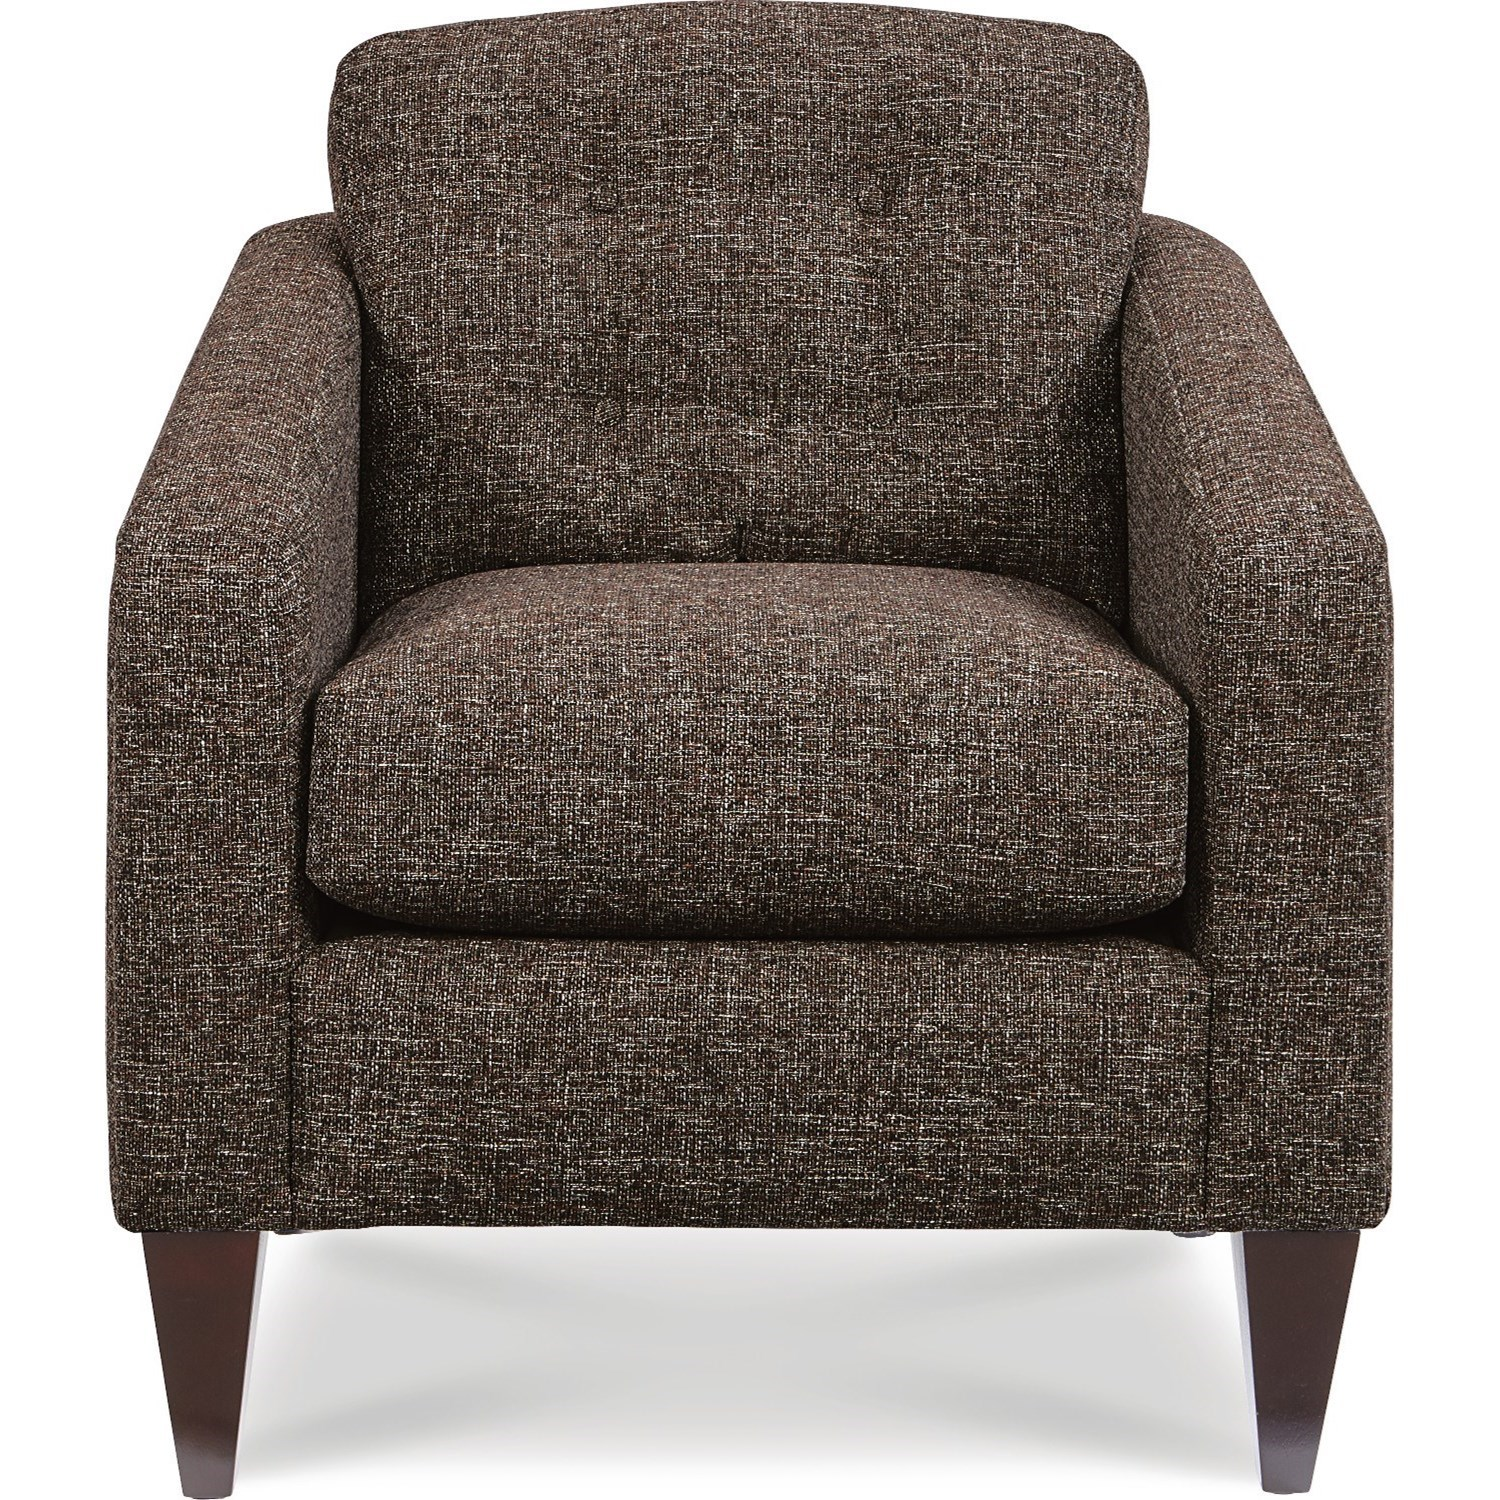 Chairs Jazz Accent Chair by La-Z-Boy at Jordan's Home Furnishings